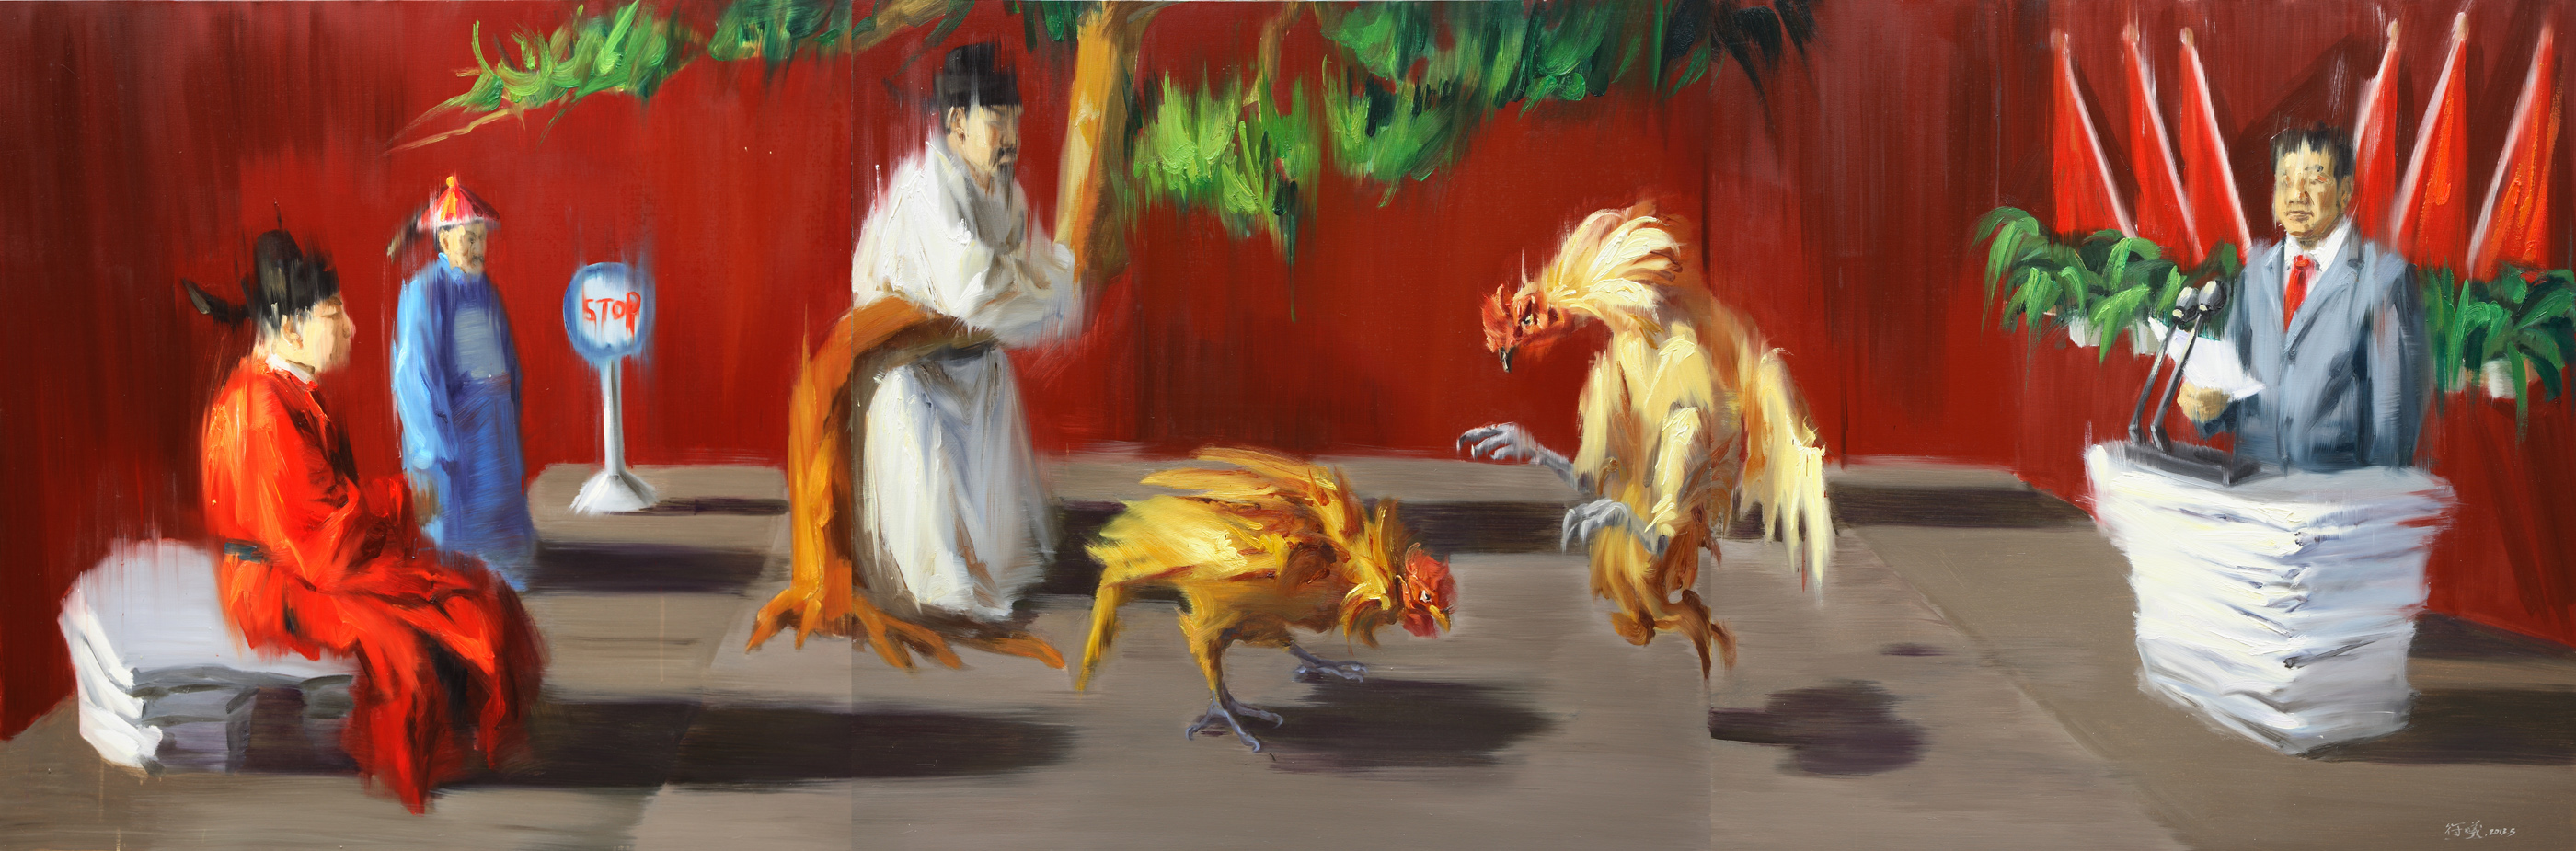 鸡飞(1)  Flying Rooster (1)